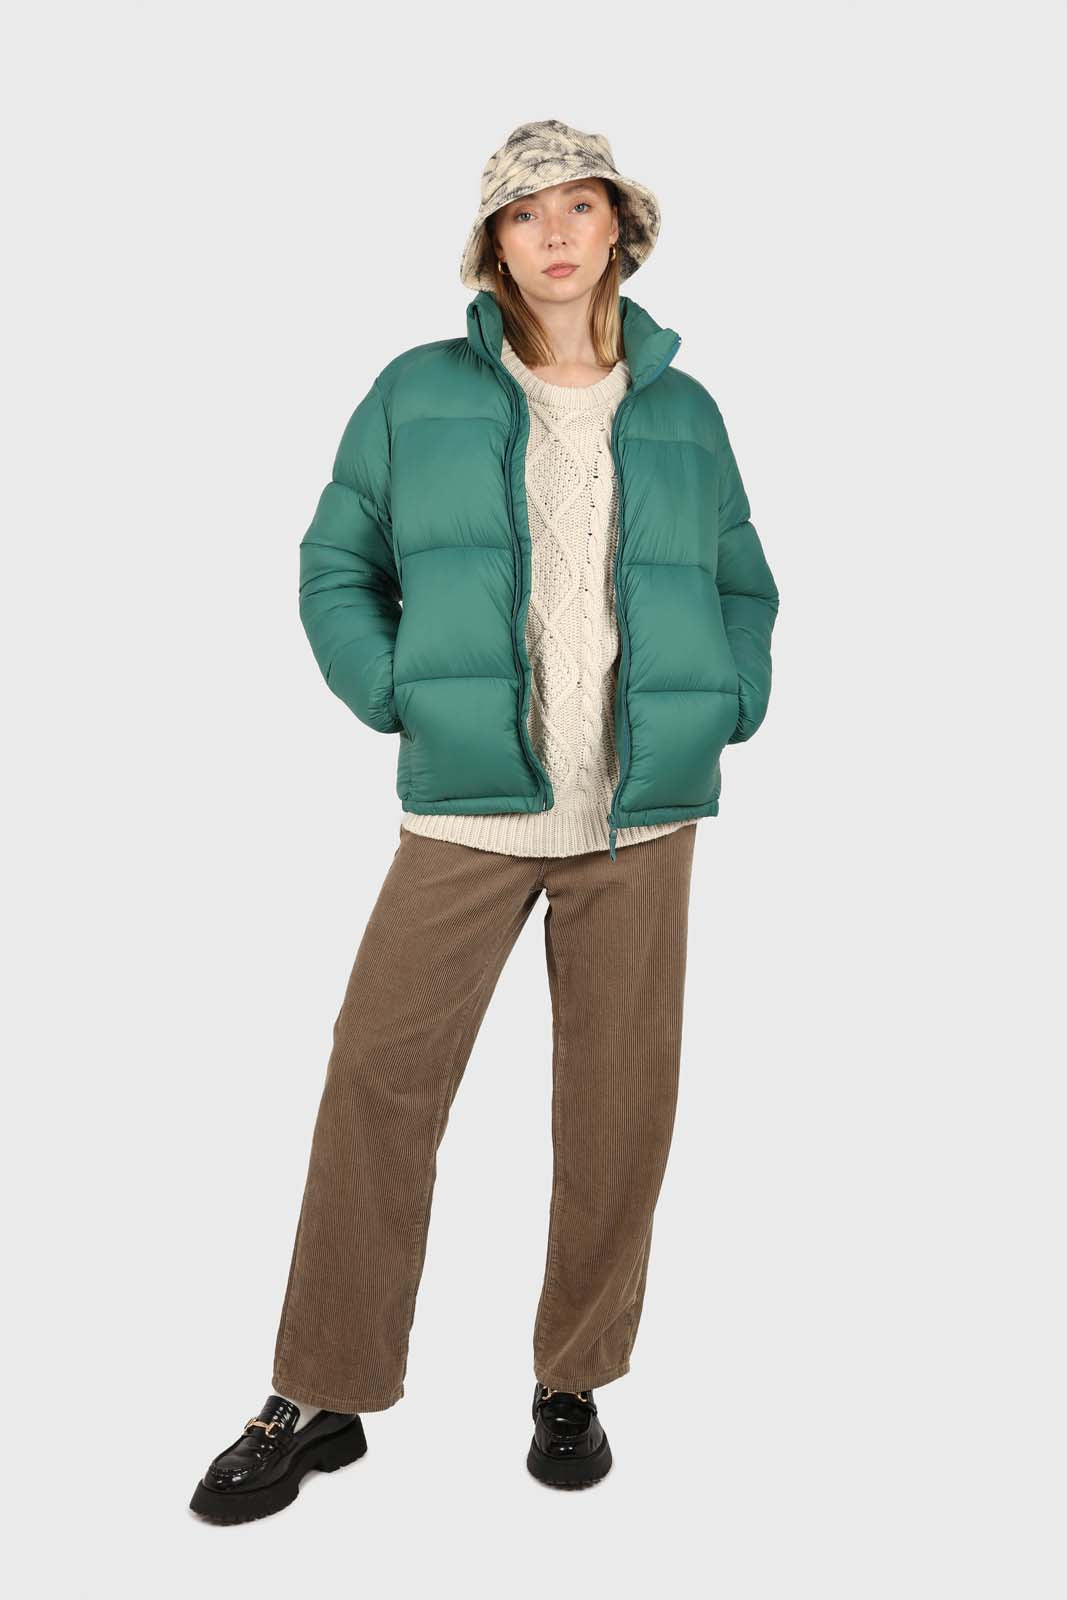 Teal thick classic puffer jacket2